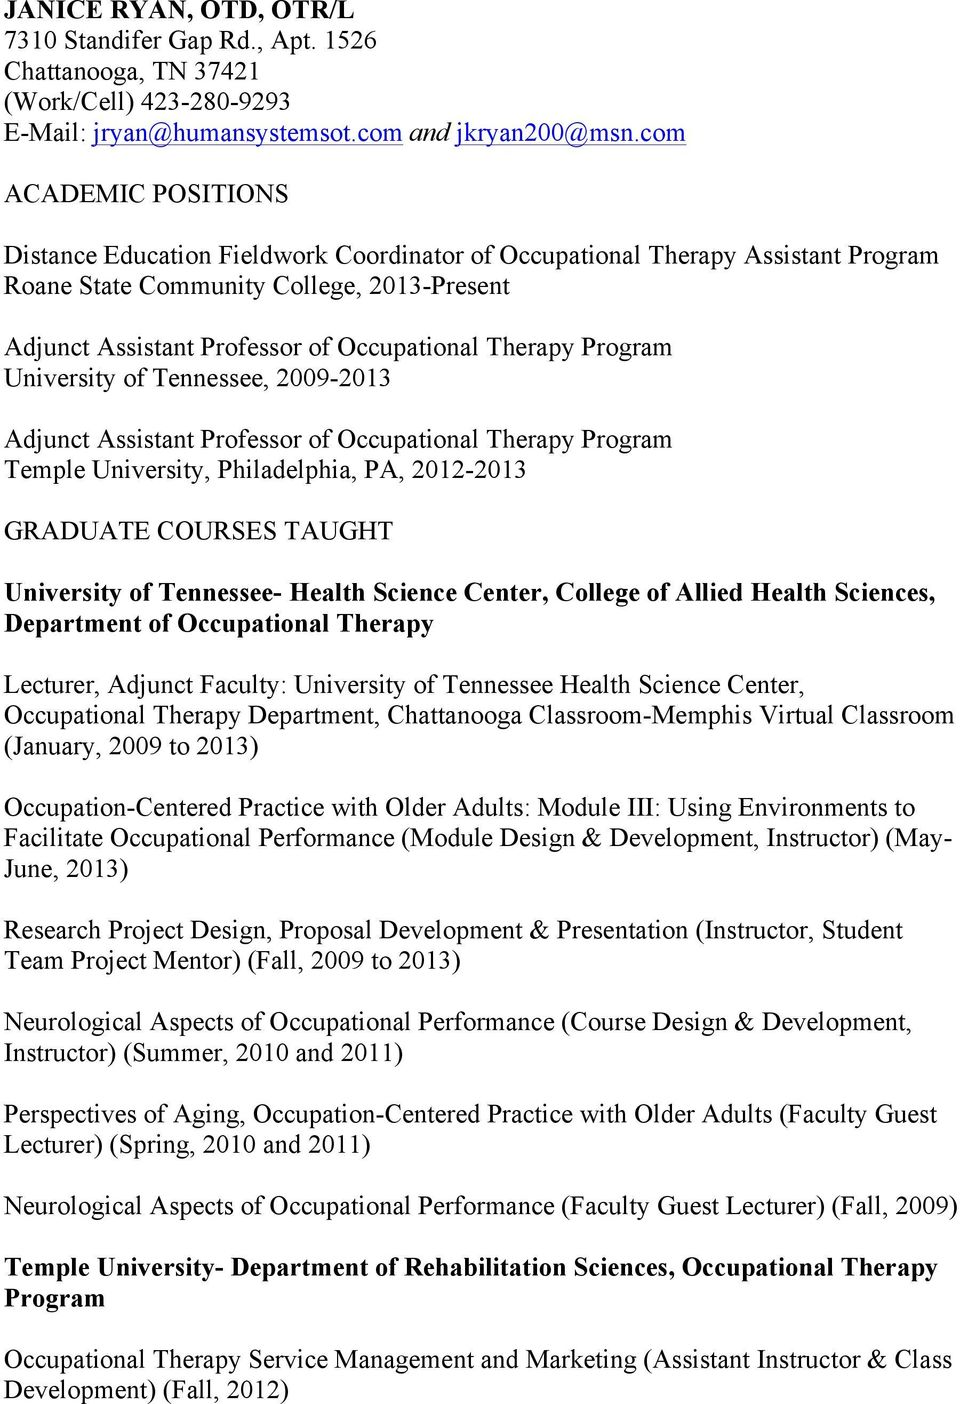 Distance Education Fieldwork Coordinator Of Occupational Therapy